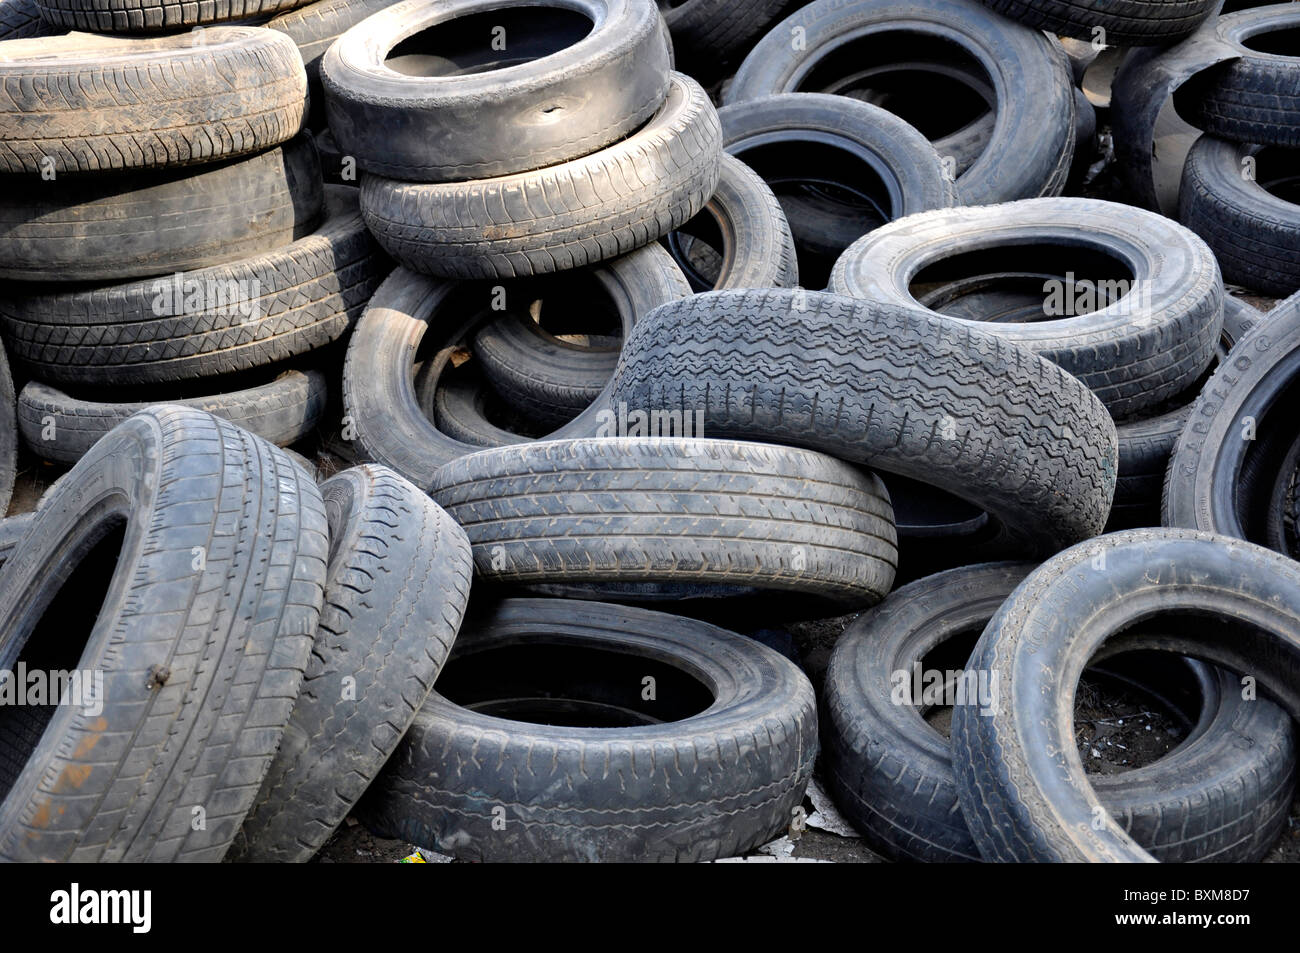 Dumped tyres - Stock Image